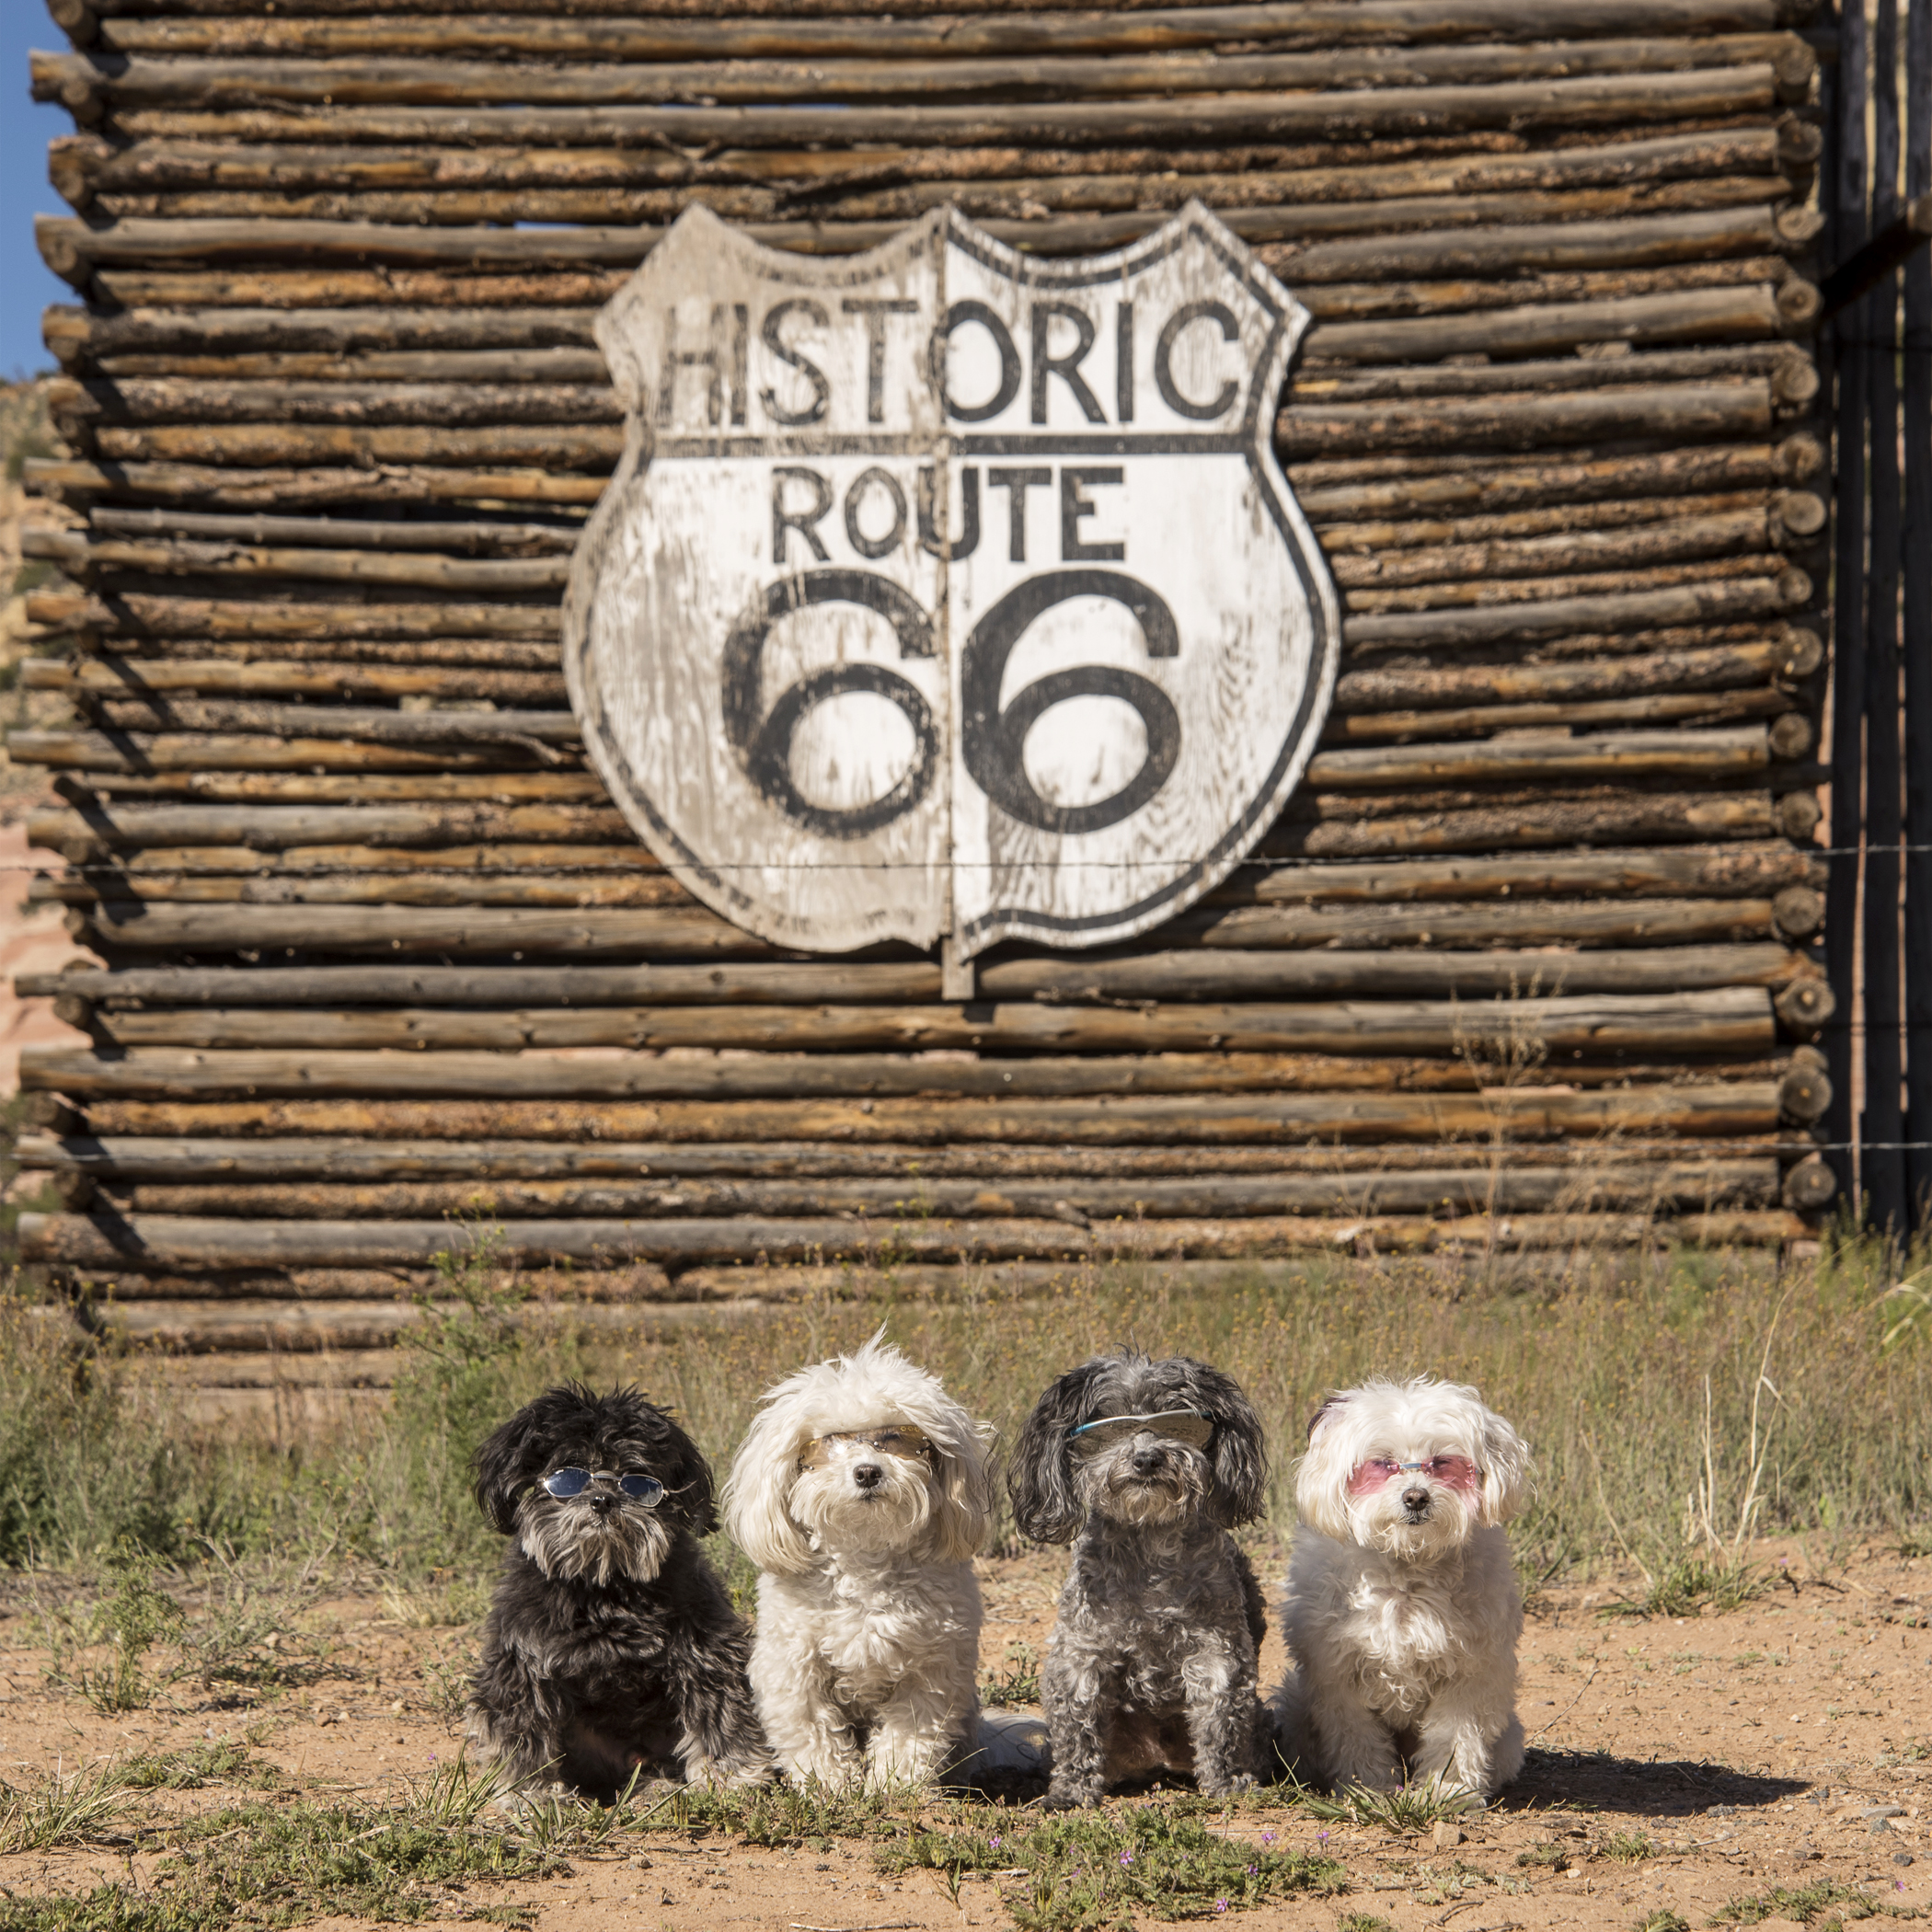 We be getting our kicks on Route 66!